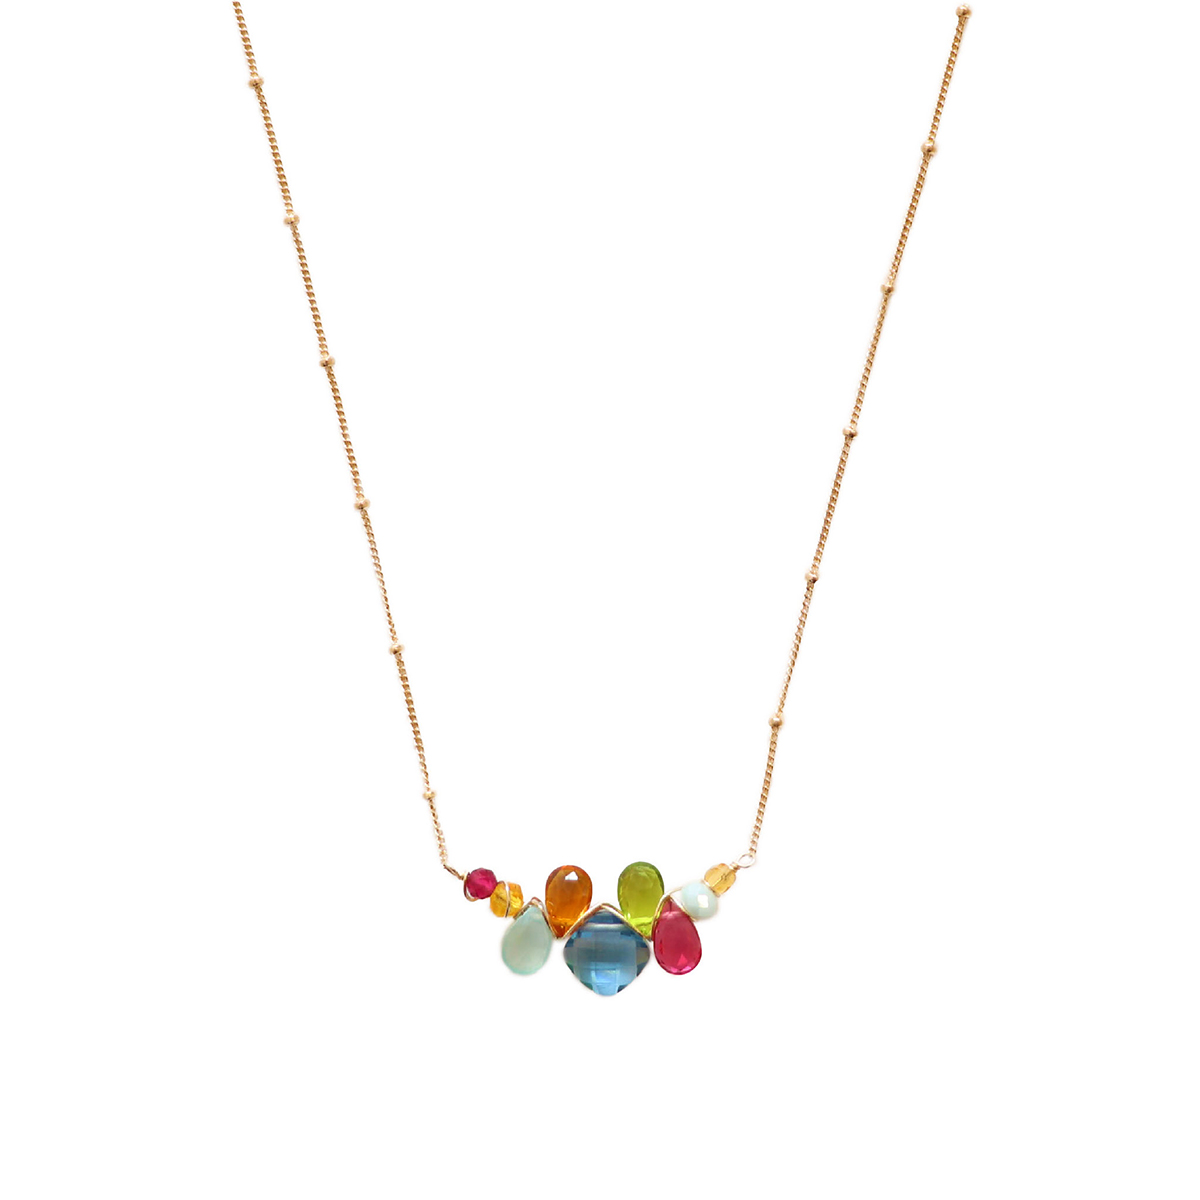 SPINEL & MIXED GEMSTONE NECKLACE, ANNA BALKAN